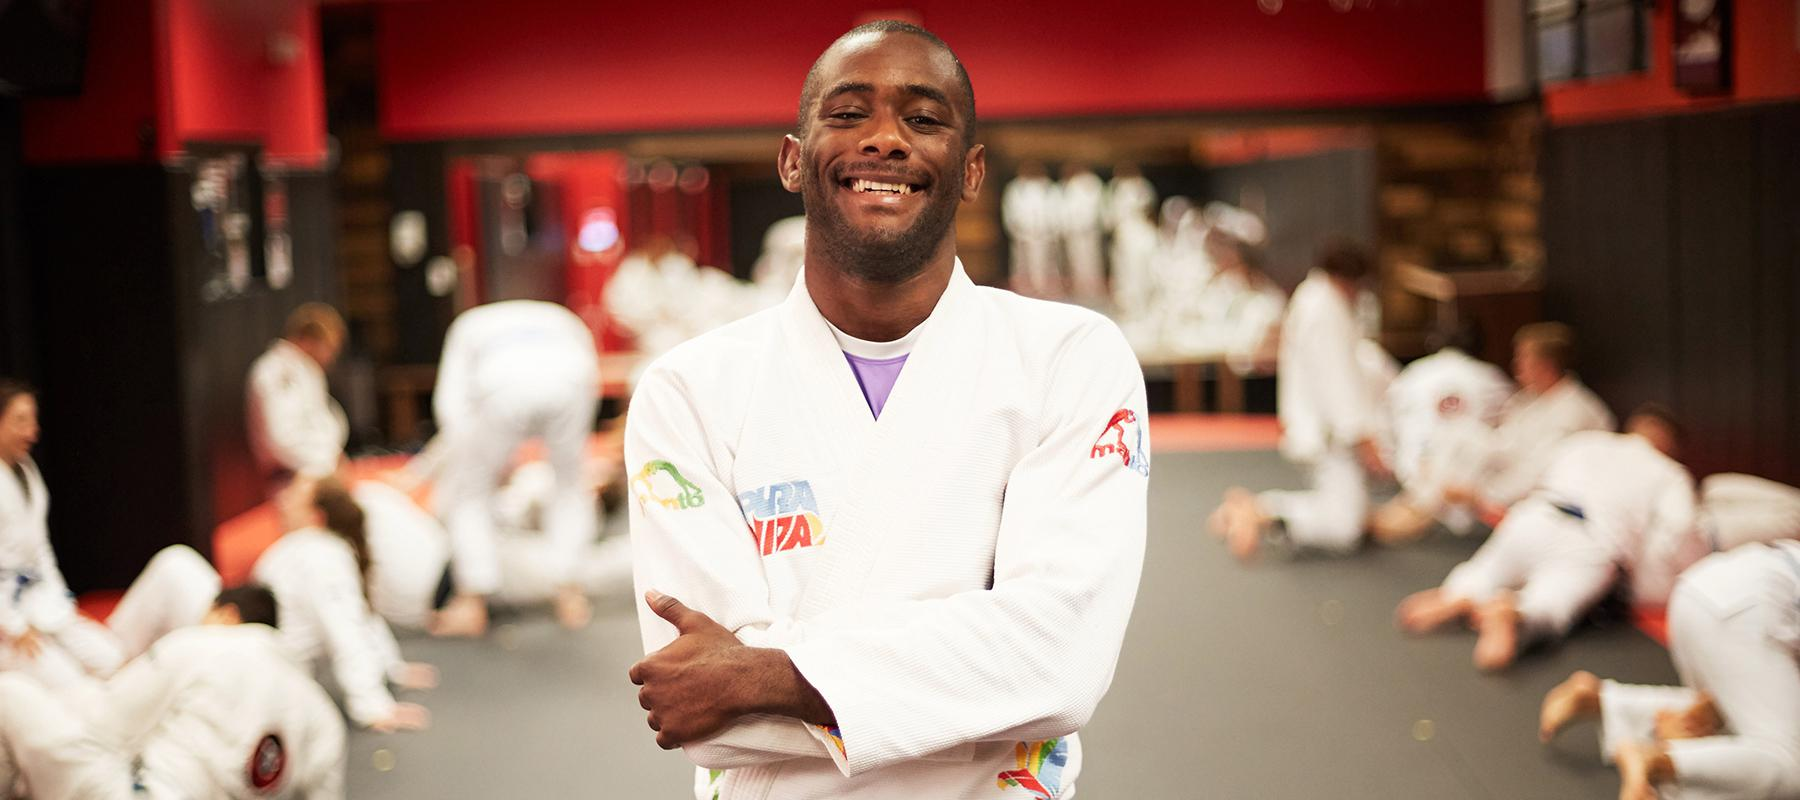 Elvin Ramirez In His Jiu-Jitsu Uniform Smiling